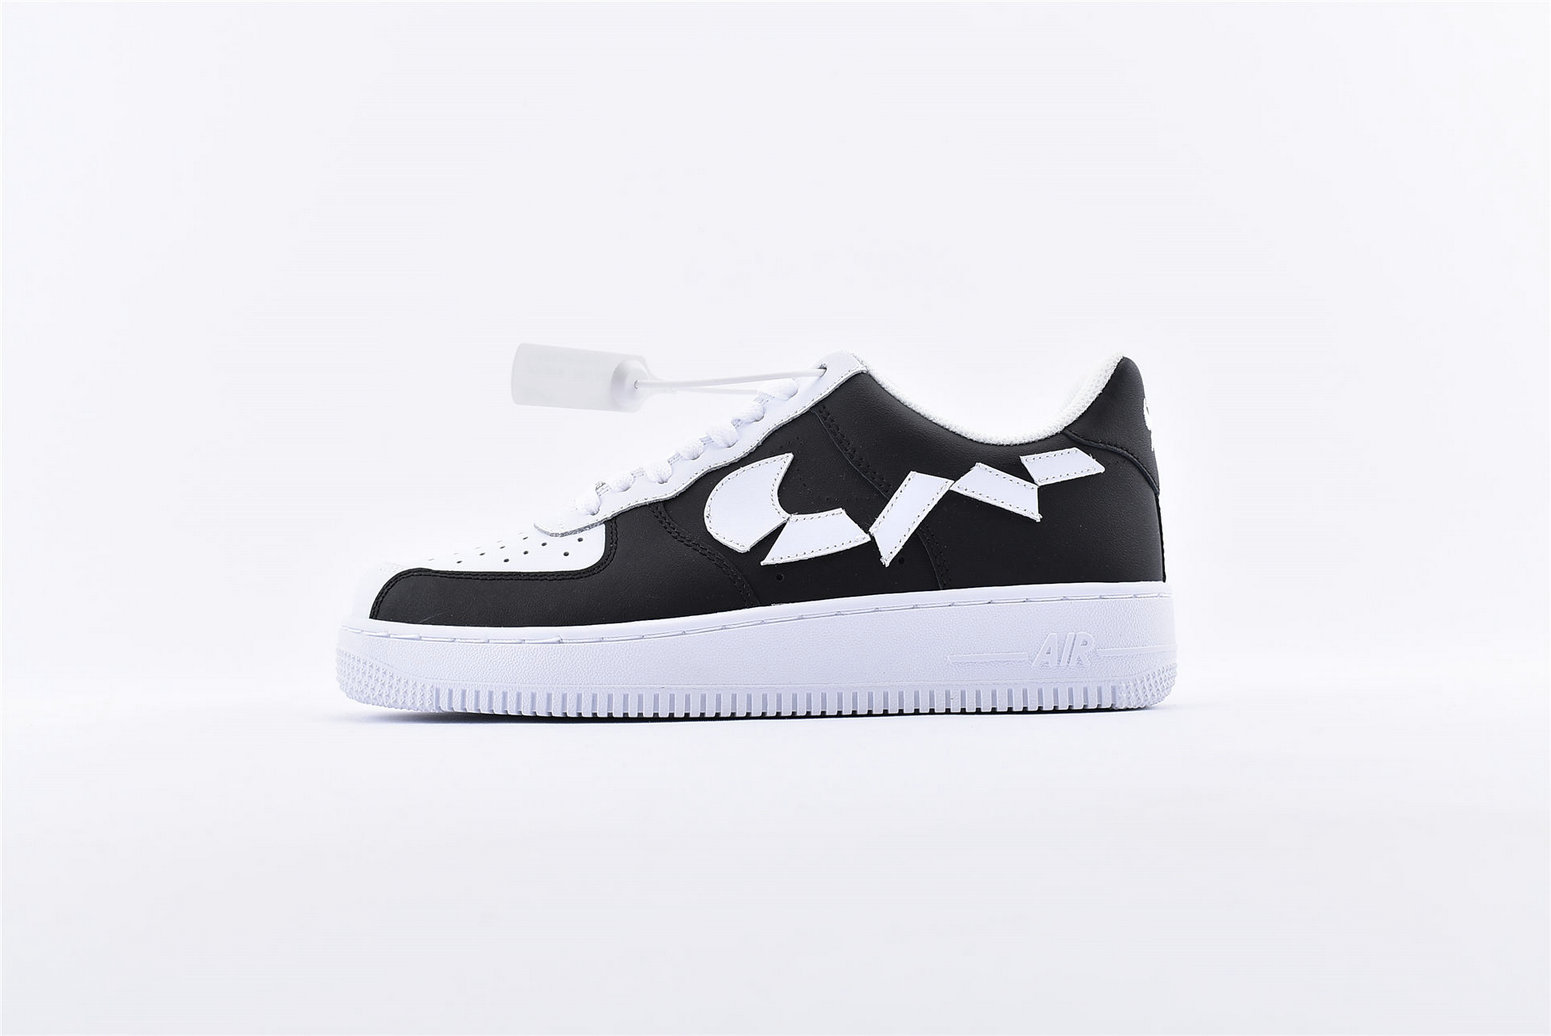 Where To Buy Womens Nike Air Force 1 07 White Black 315124-011